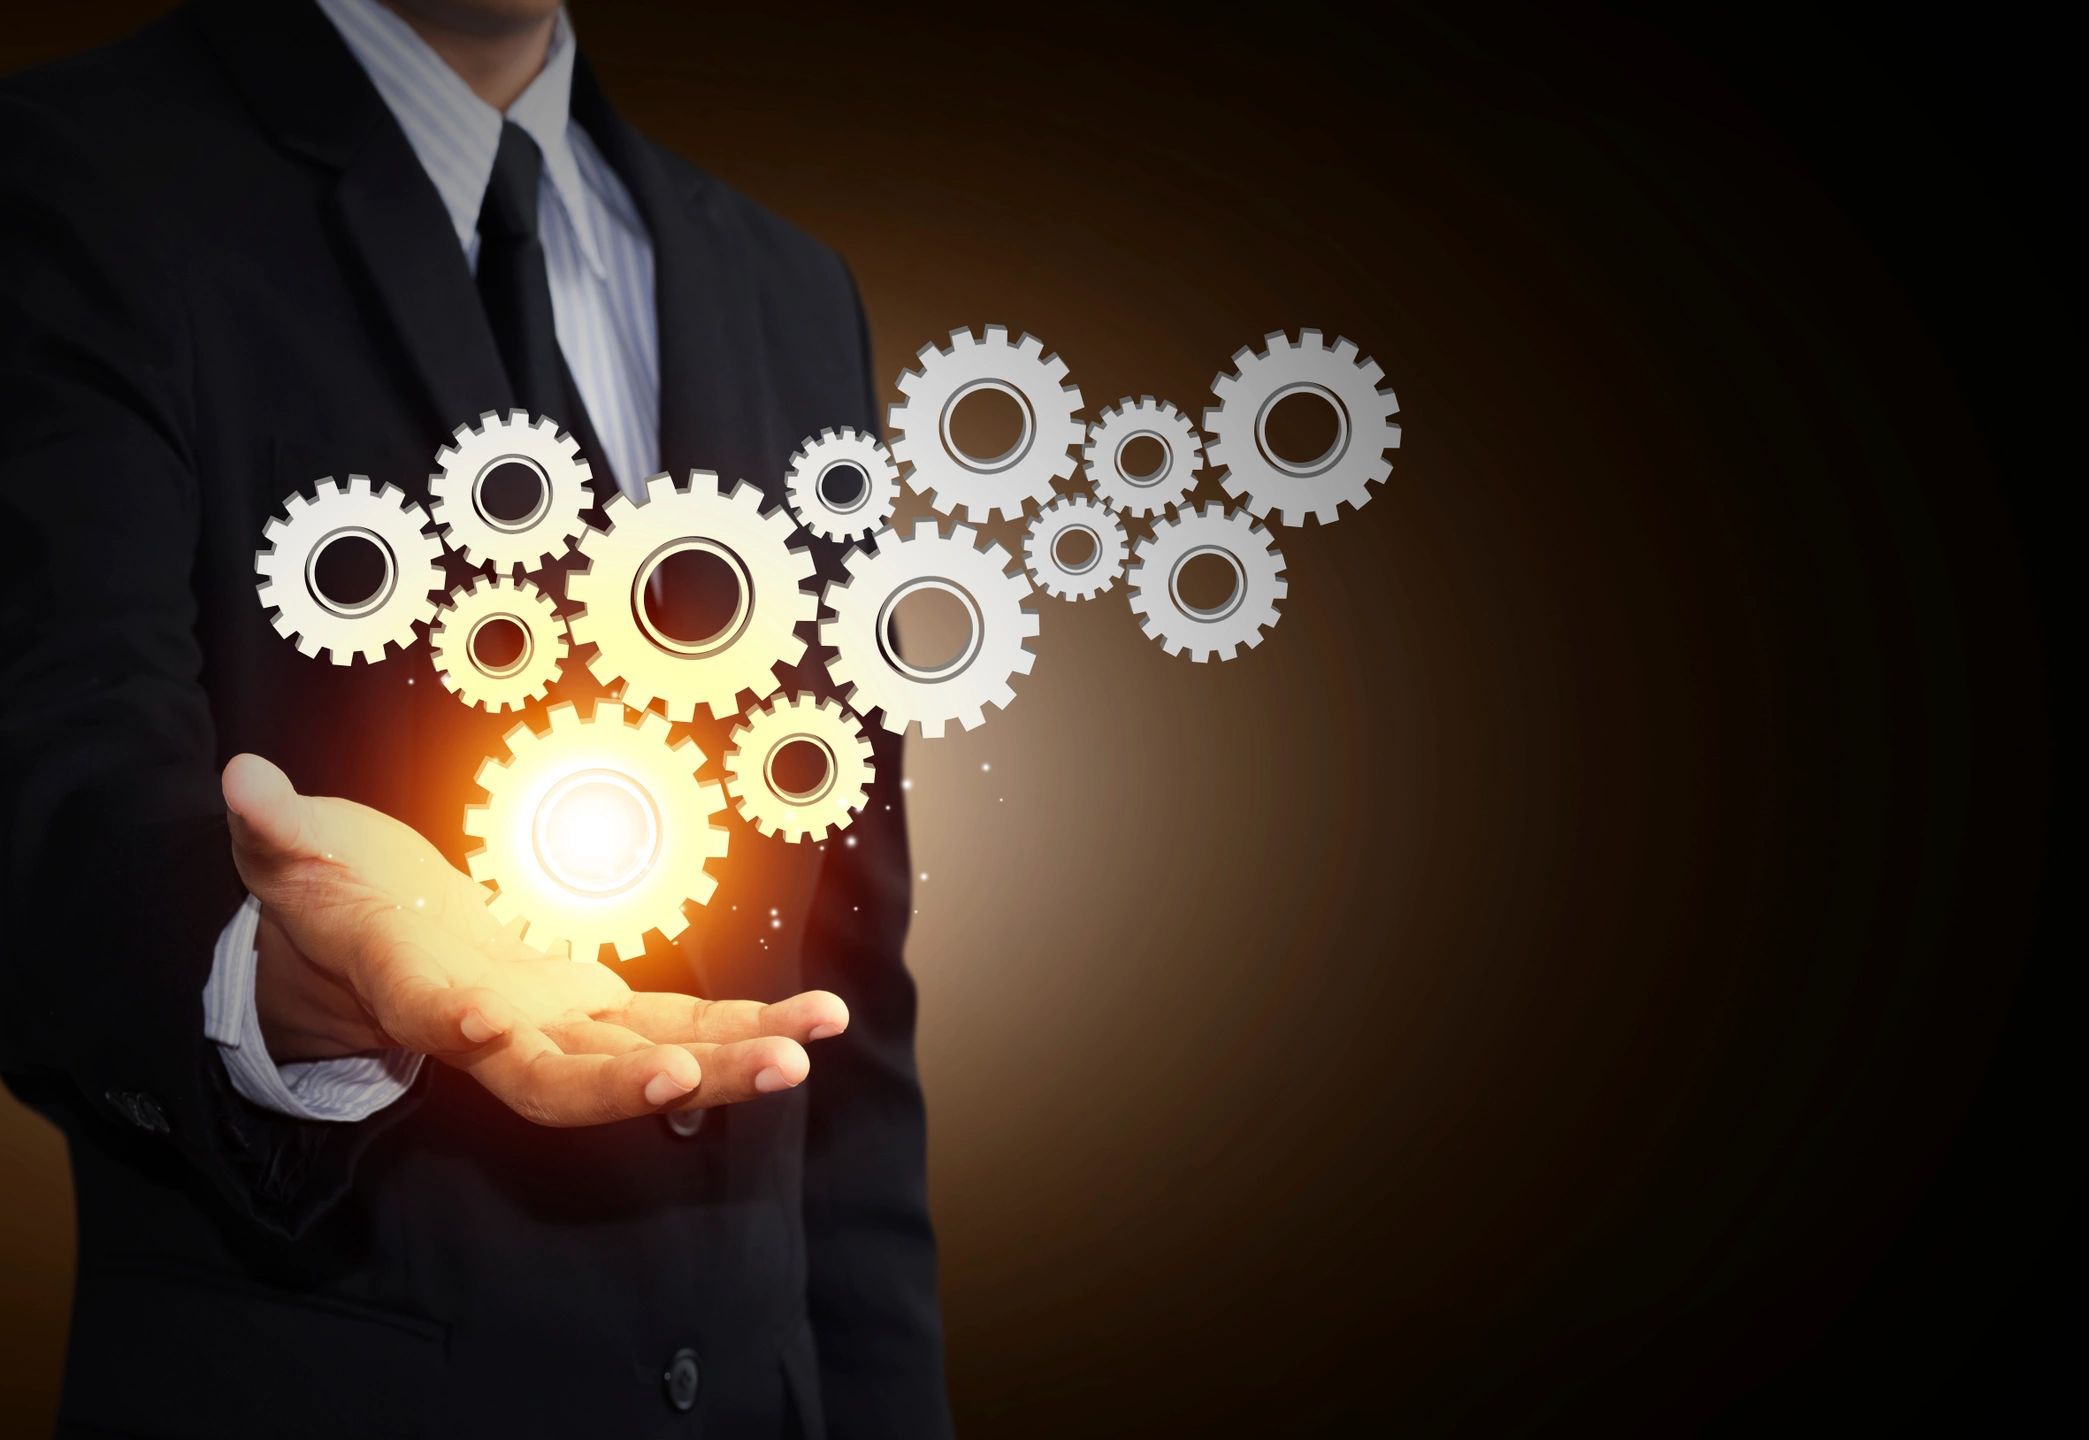 business performance improvement and strategic marketing consultant